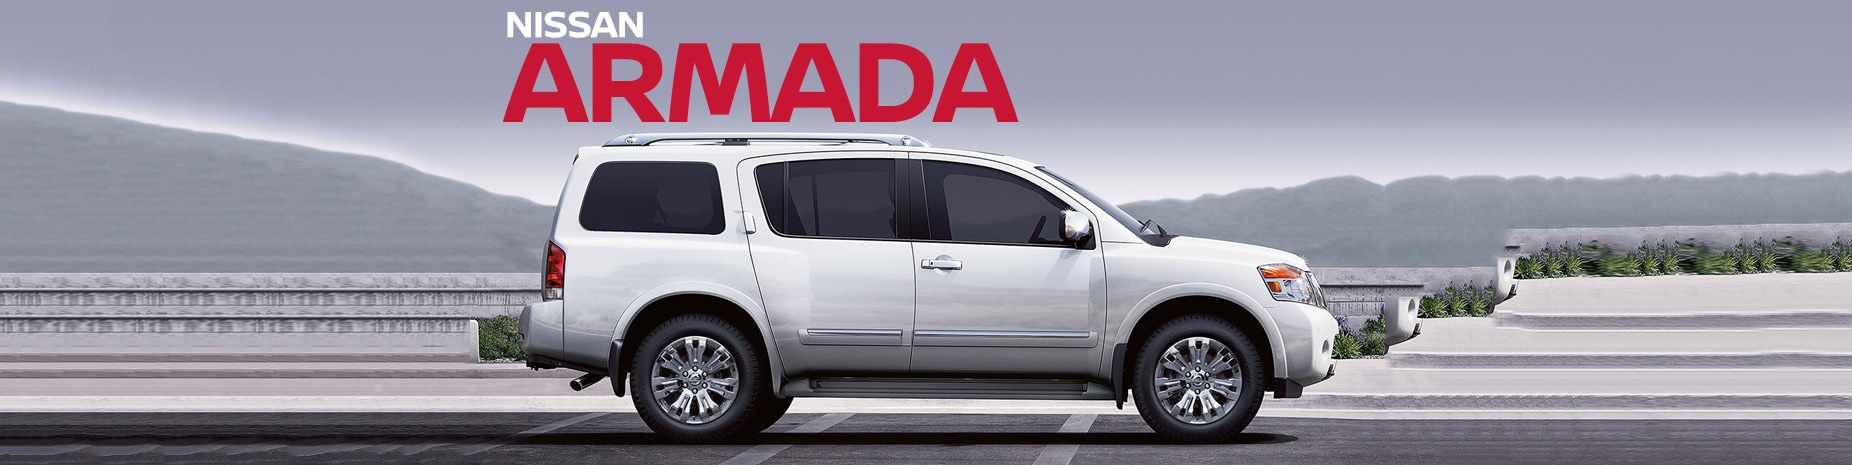 new nissan armada suv for sale used armada for sale. Black Bedroom Furniture Sets. Home Design Ideas